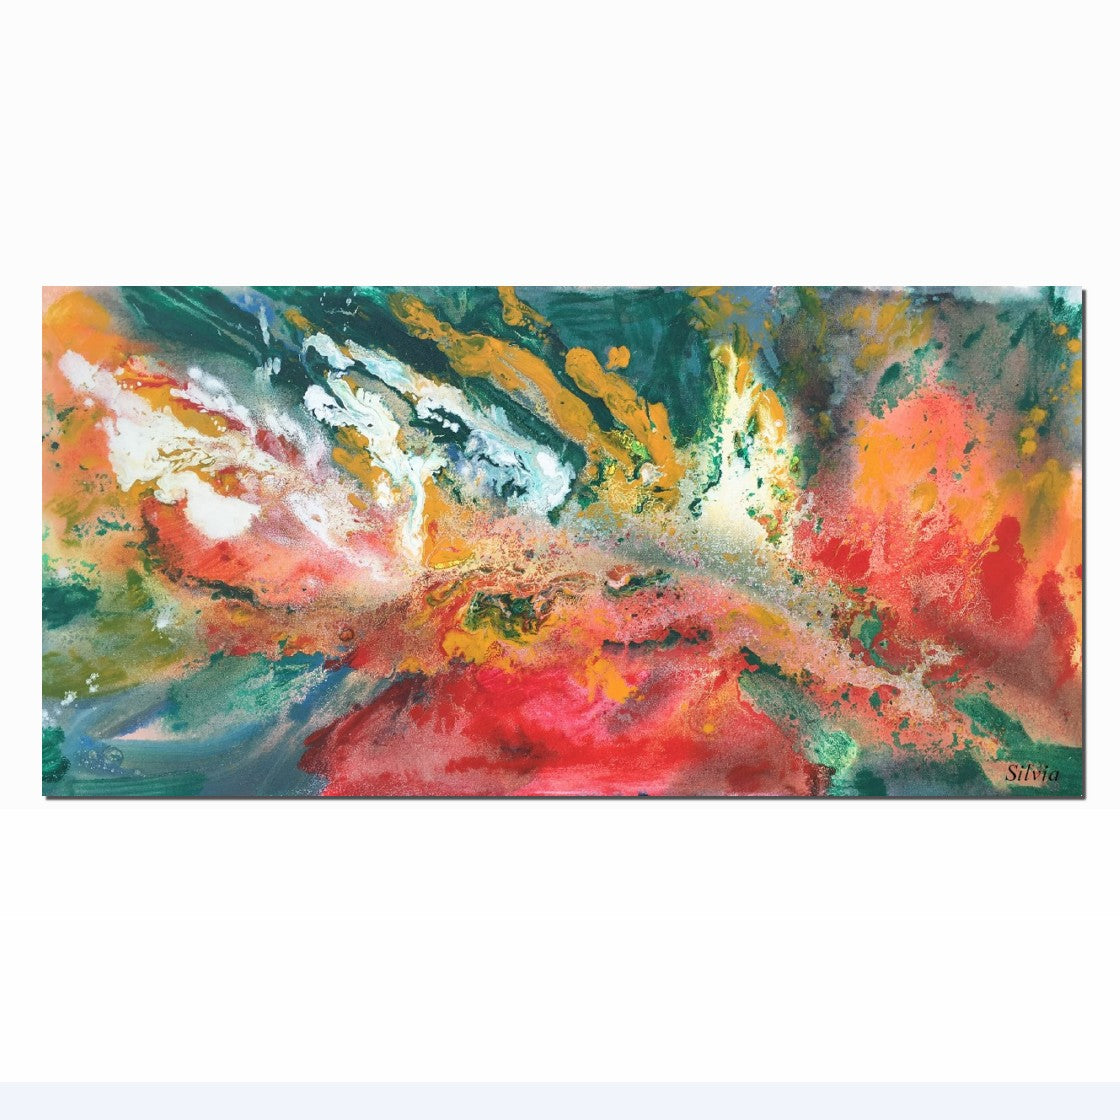 Abstract Painting, Modern Art, Original Artwork, Abstract Canvas Art, Kitchen Wall Decor, Abstract Art, Large Oil Painting, Ready to Hang